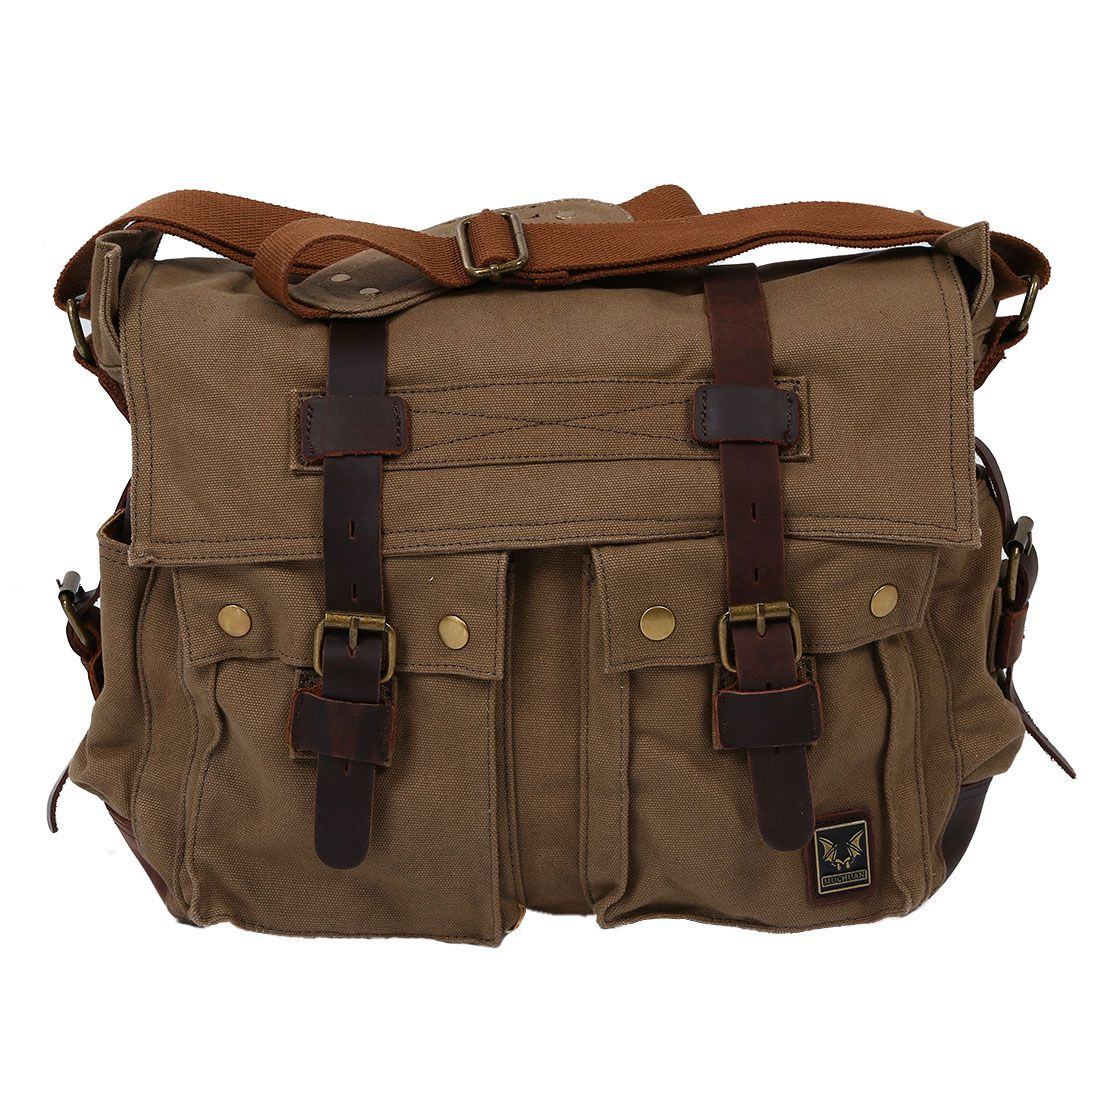 9f735aa4a603 Men s Vintage Canvas Leather School Shoulder Bag Messenger Sling Crossbody  Bag Satchel